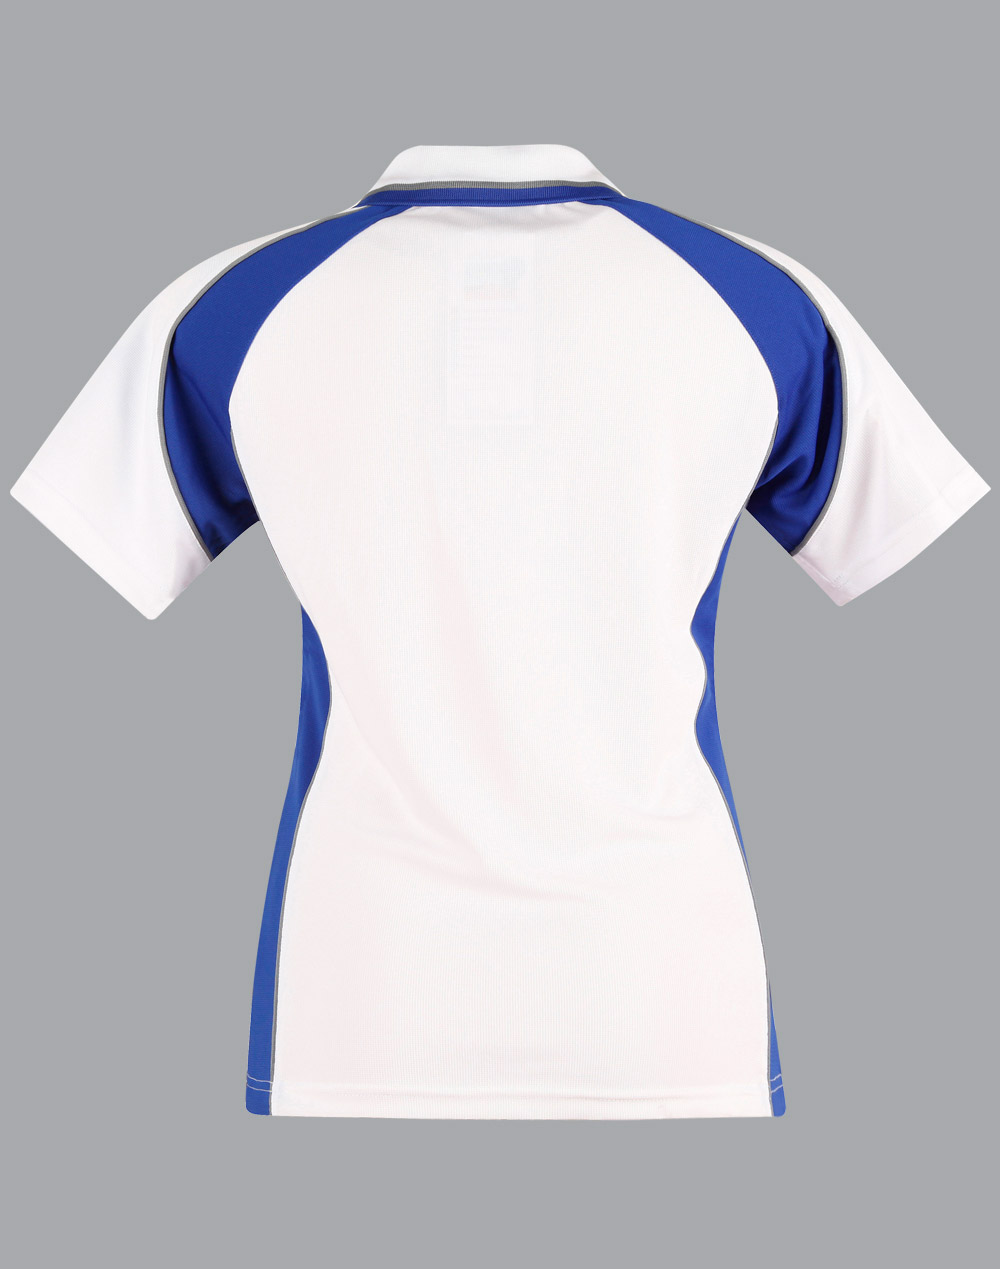 https://s3-ap-southeast-1.amazonaws.com/ws-imgs/POLOSHIRTS/PS50_WhiteRoyal_Back.jpg